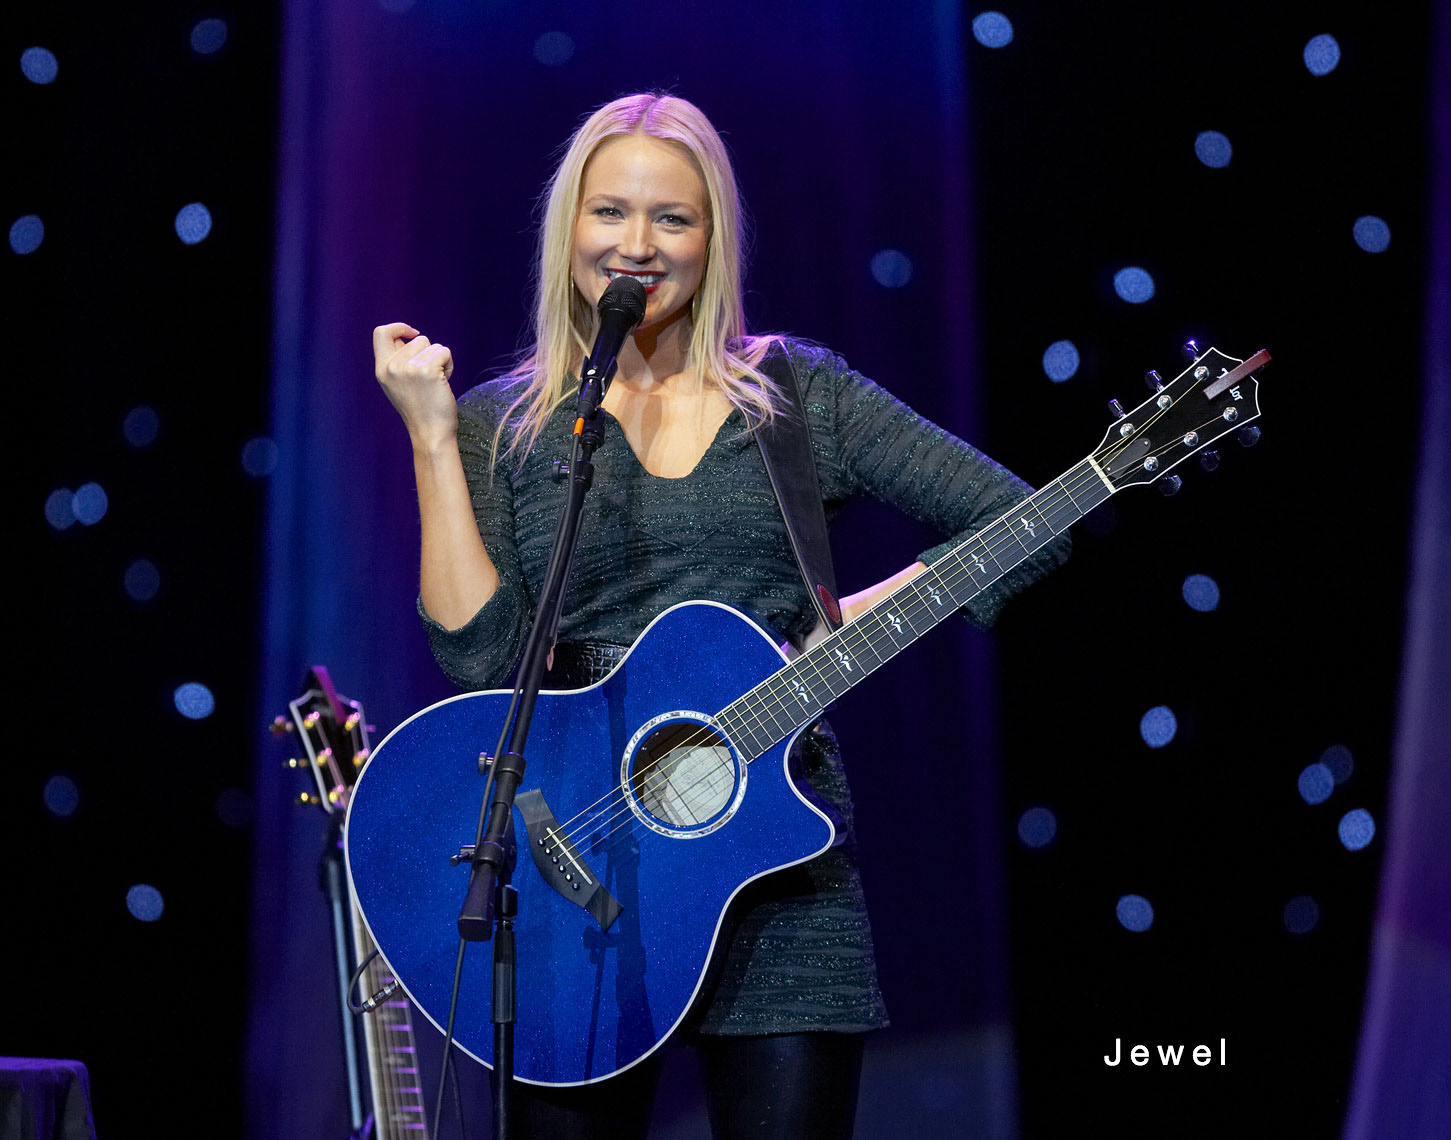 Jewel/Mystic Lake Casino/concert photo